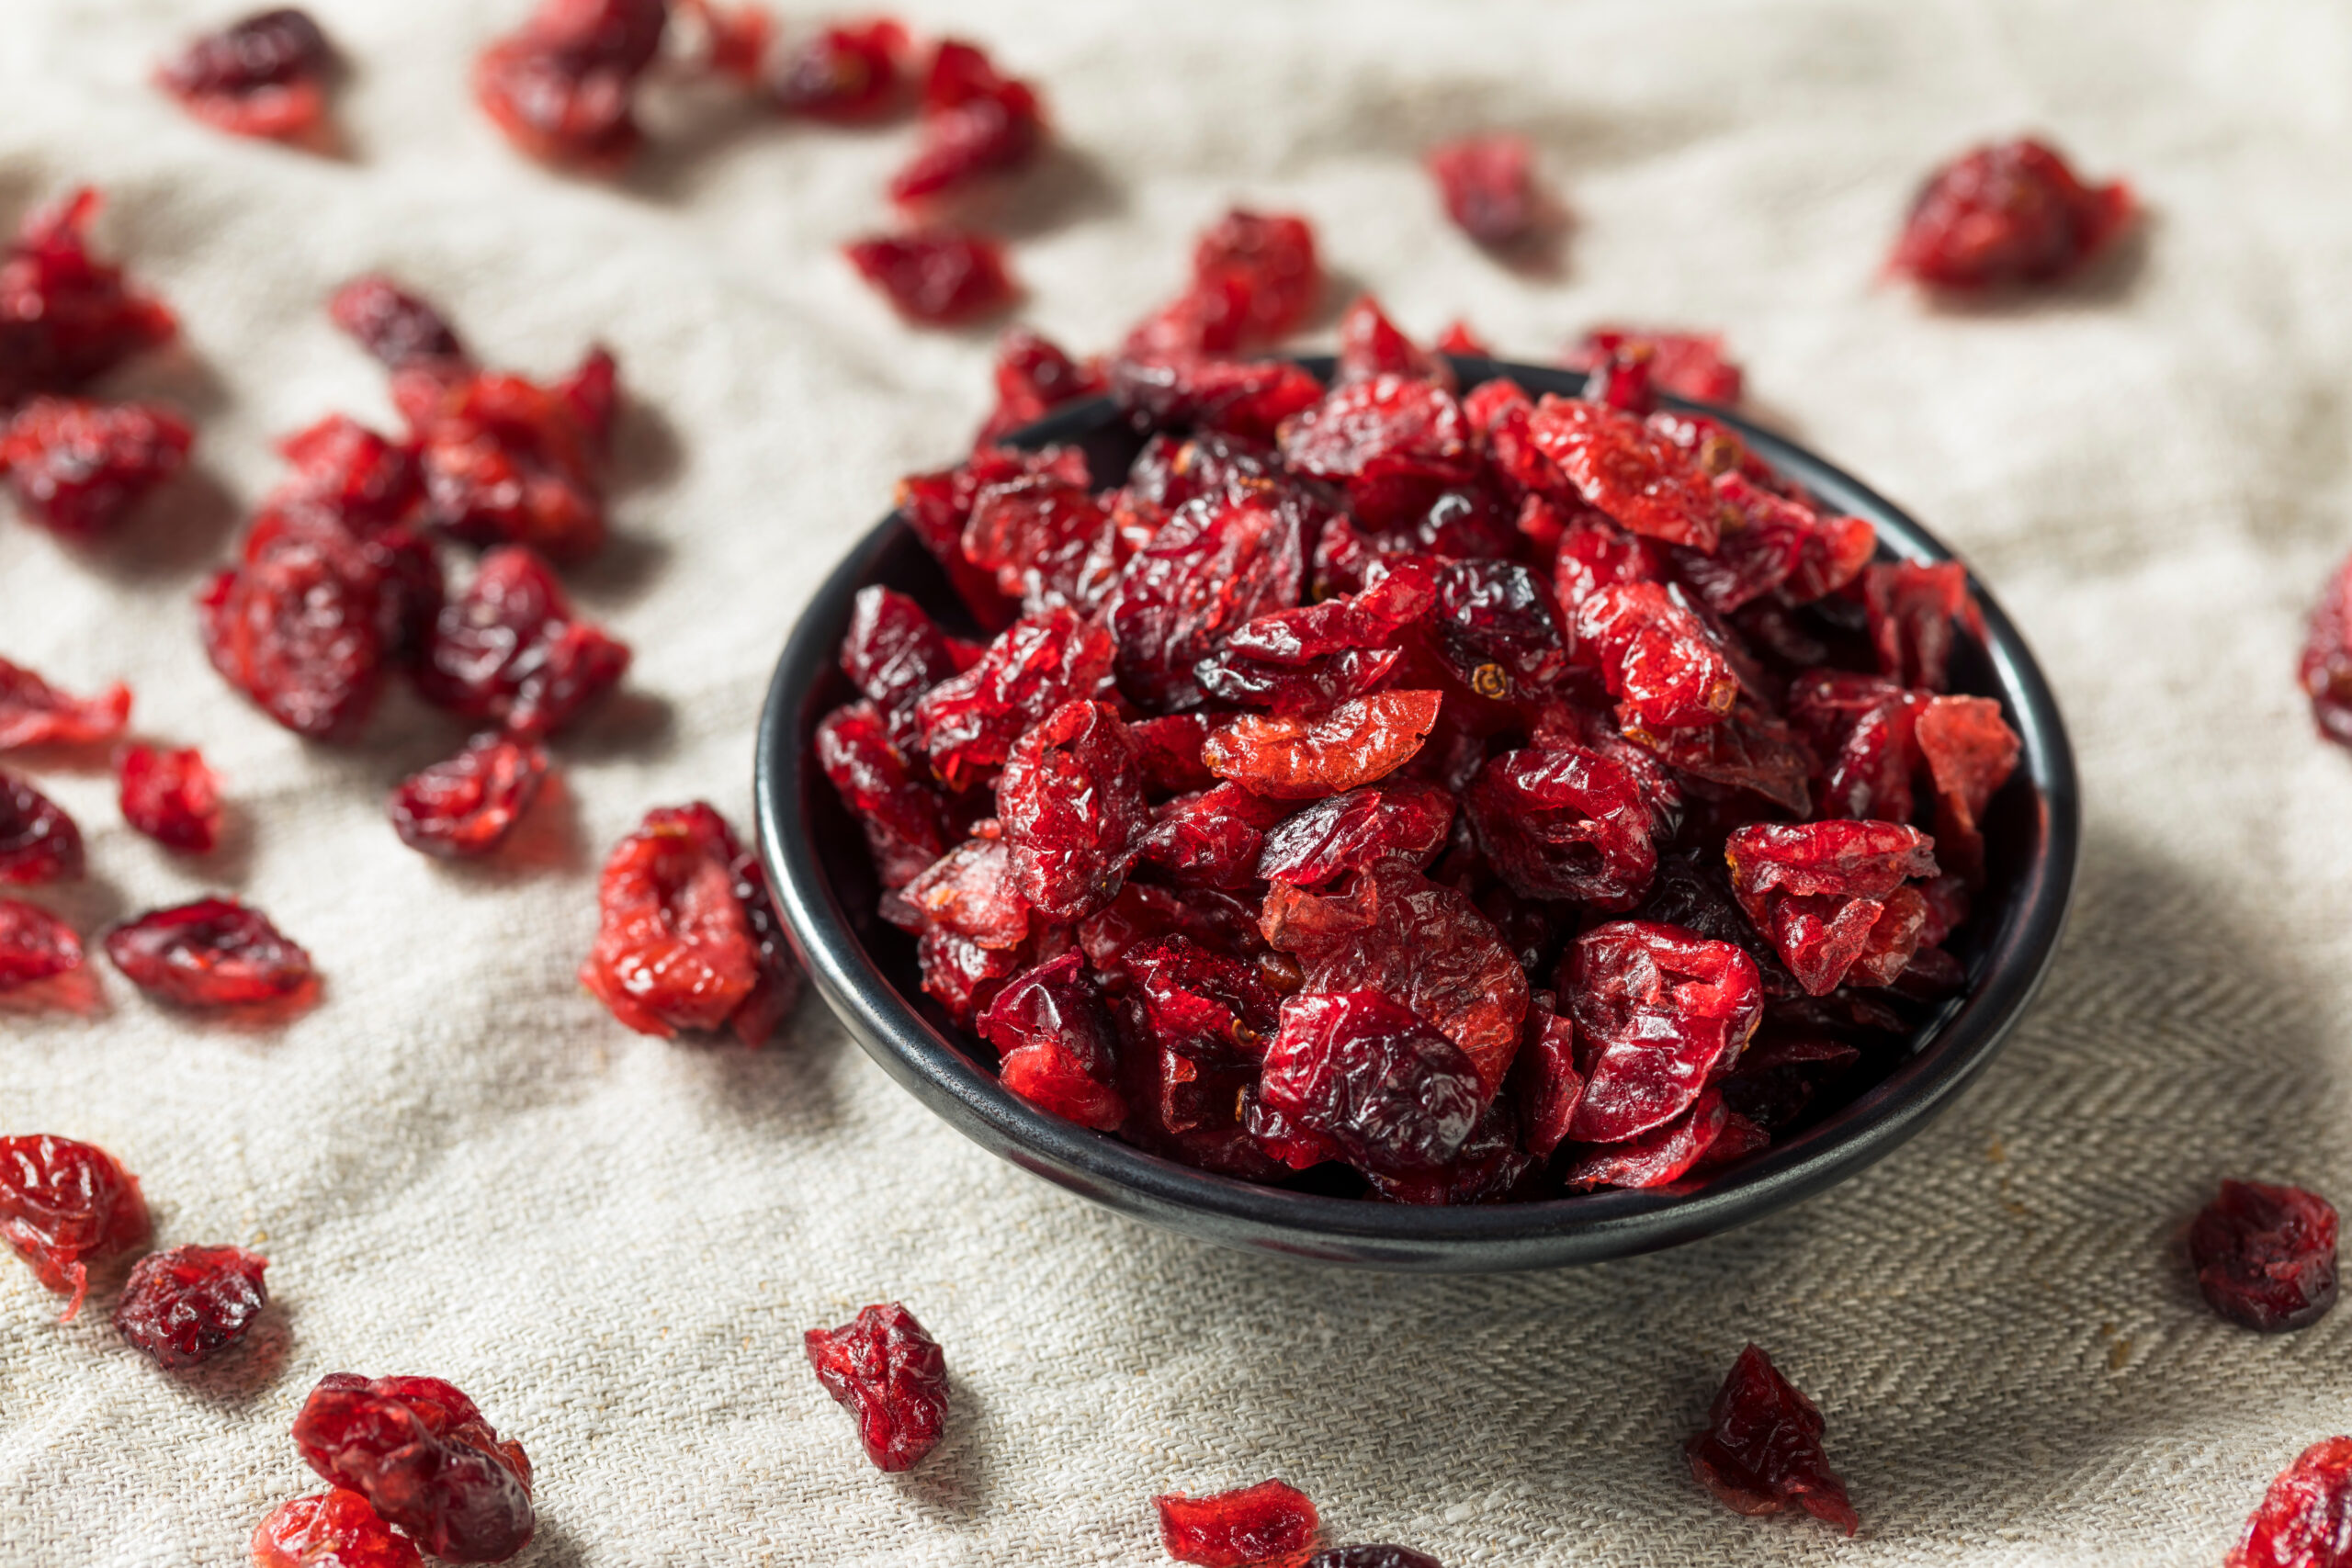 Dried-Cranberries_1245454678-scaled